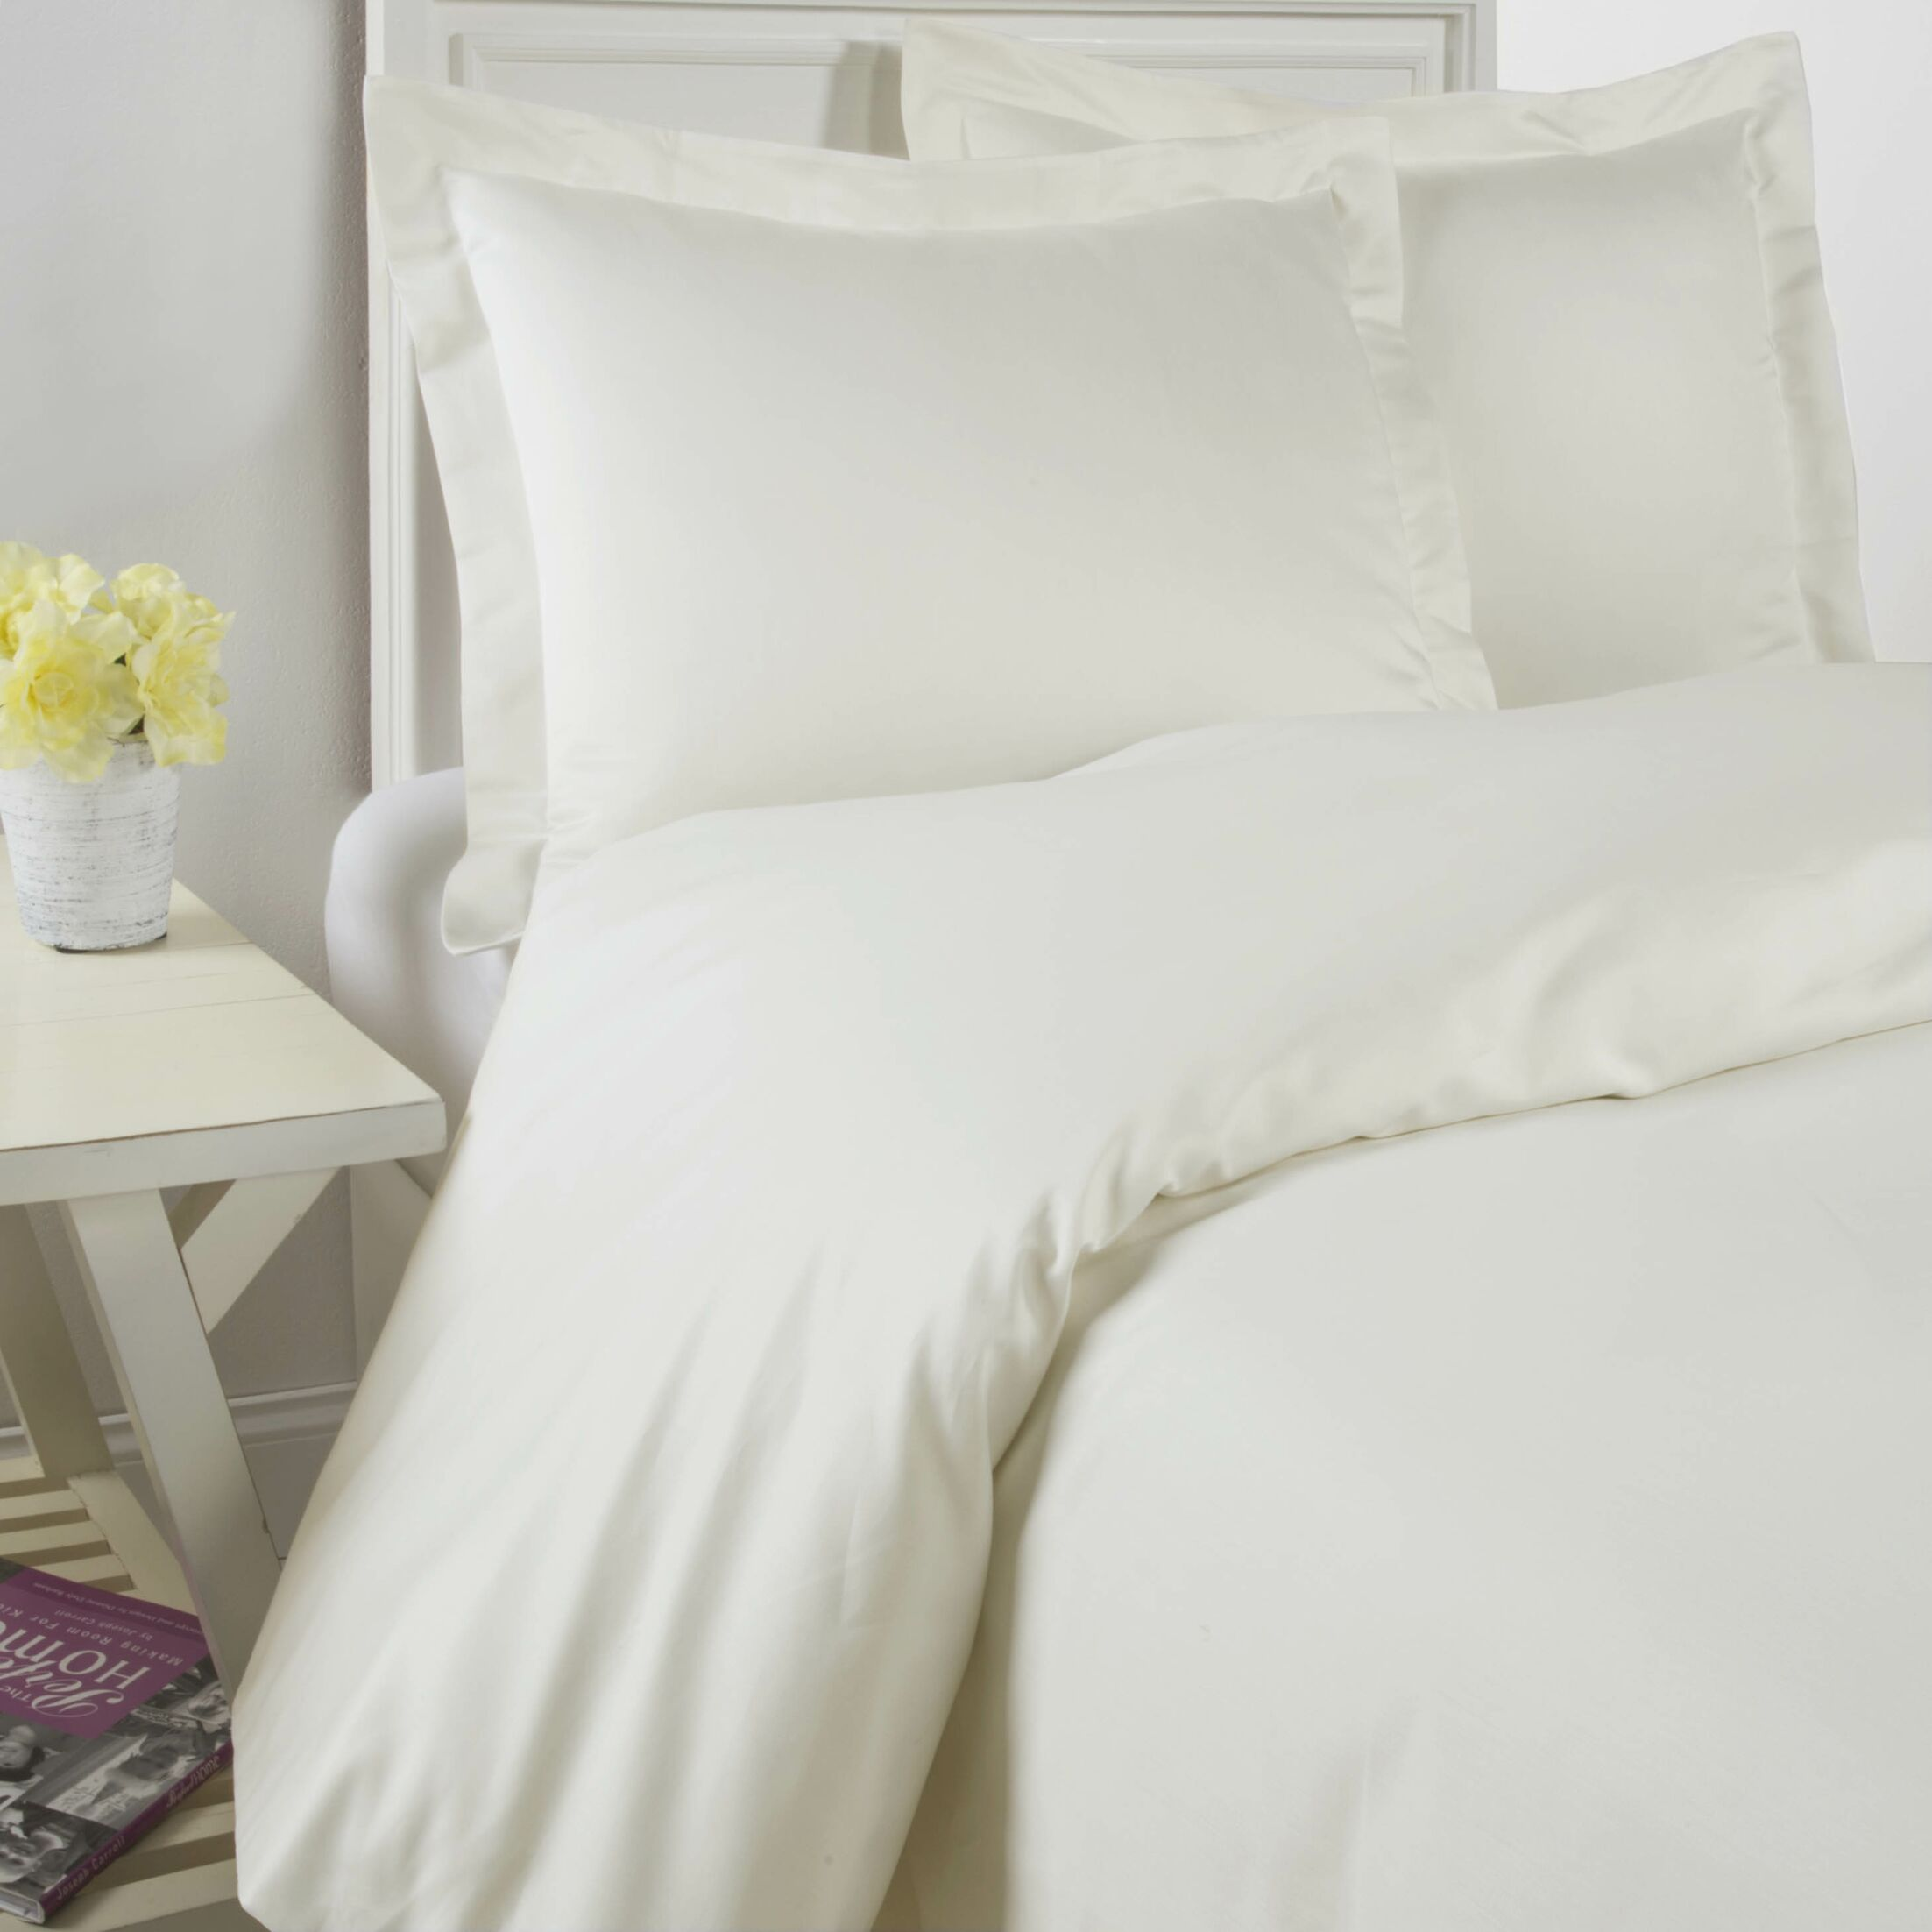 1200 Thread Count 100% Cotton Sheet Set Color: Ivory, Size: Queen